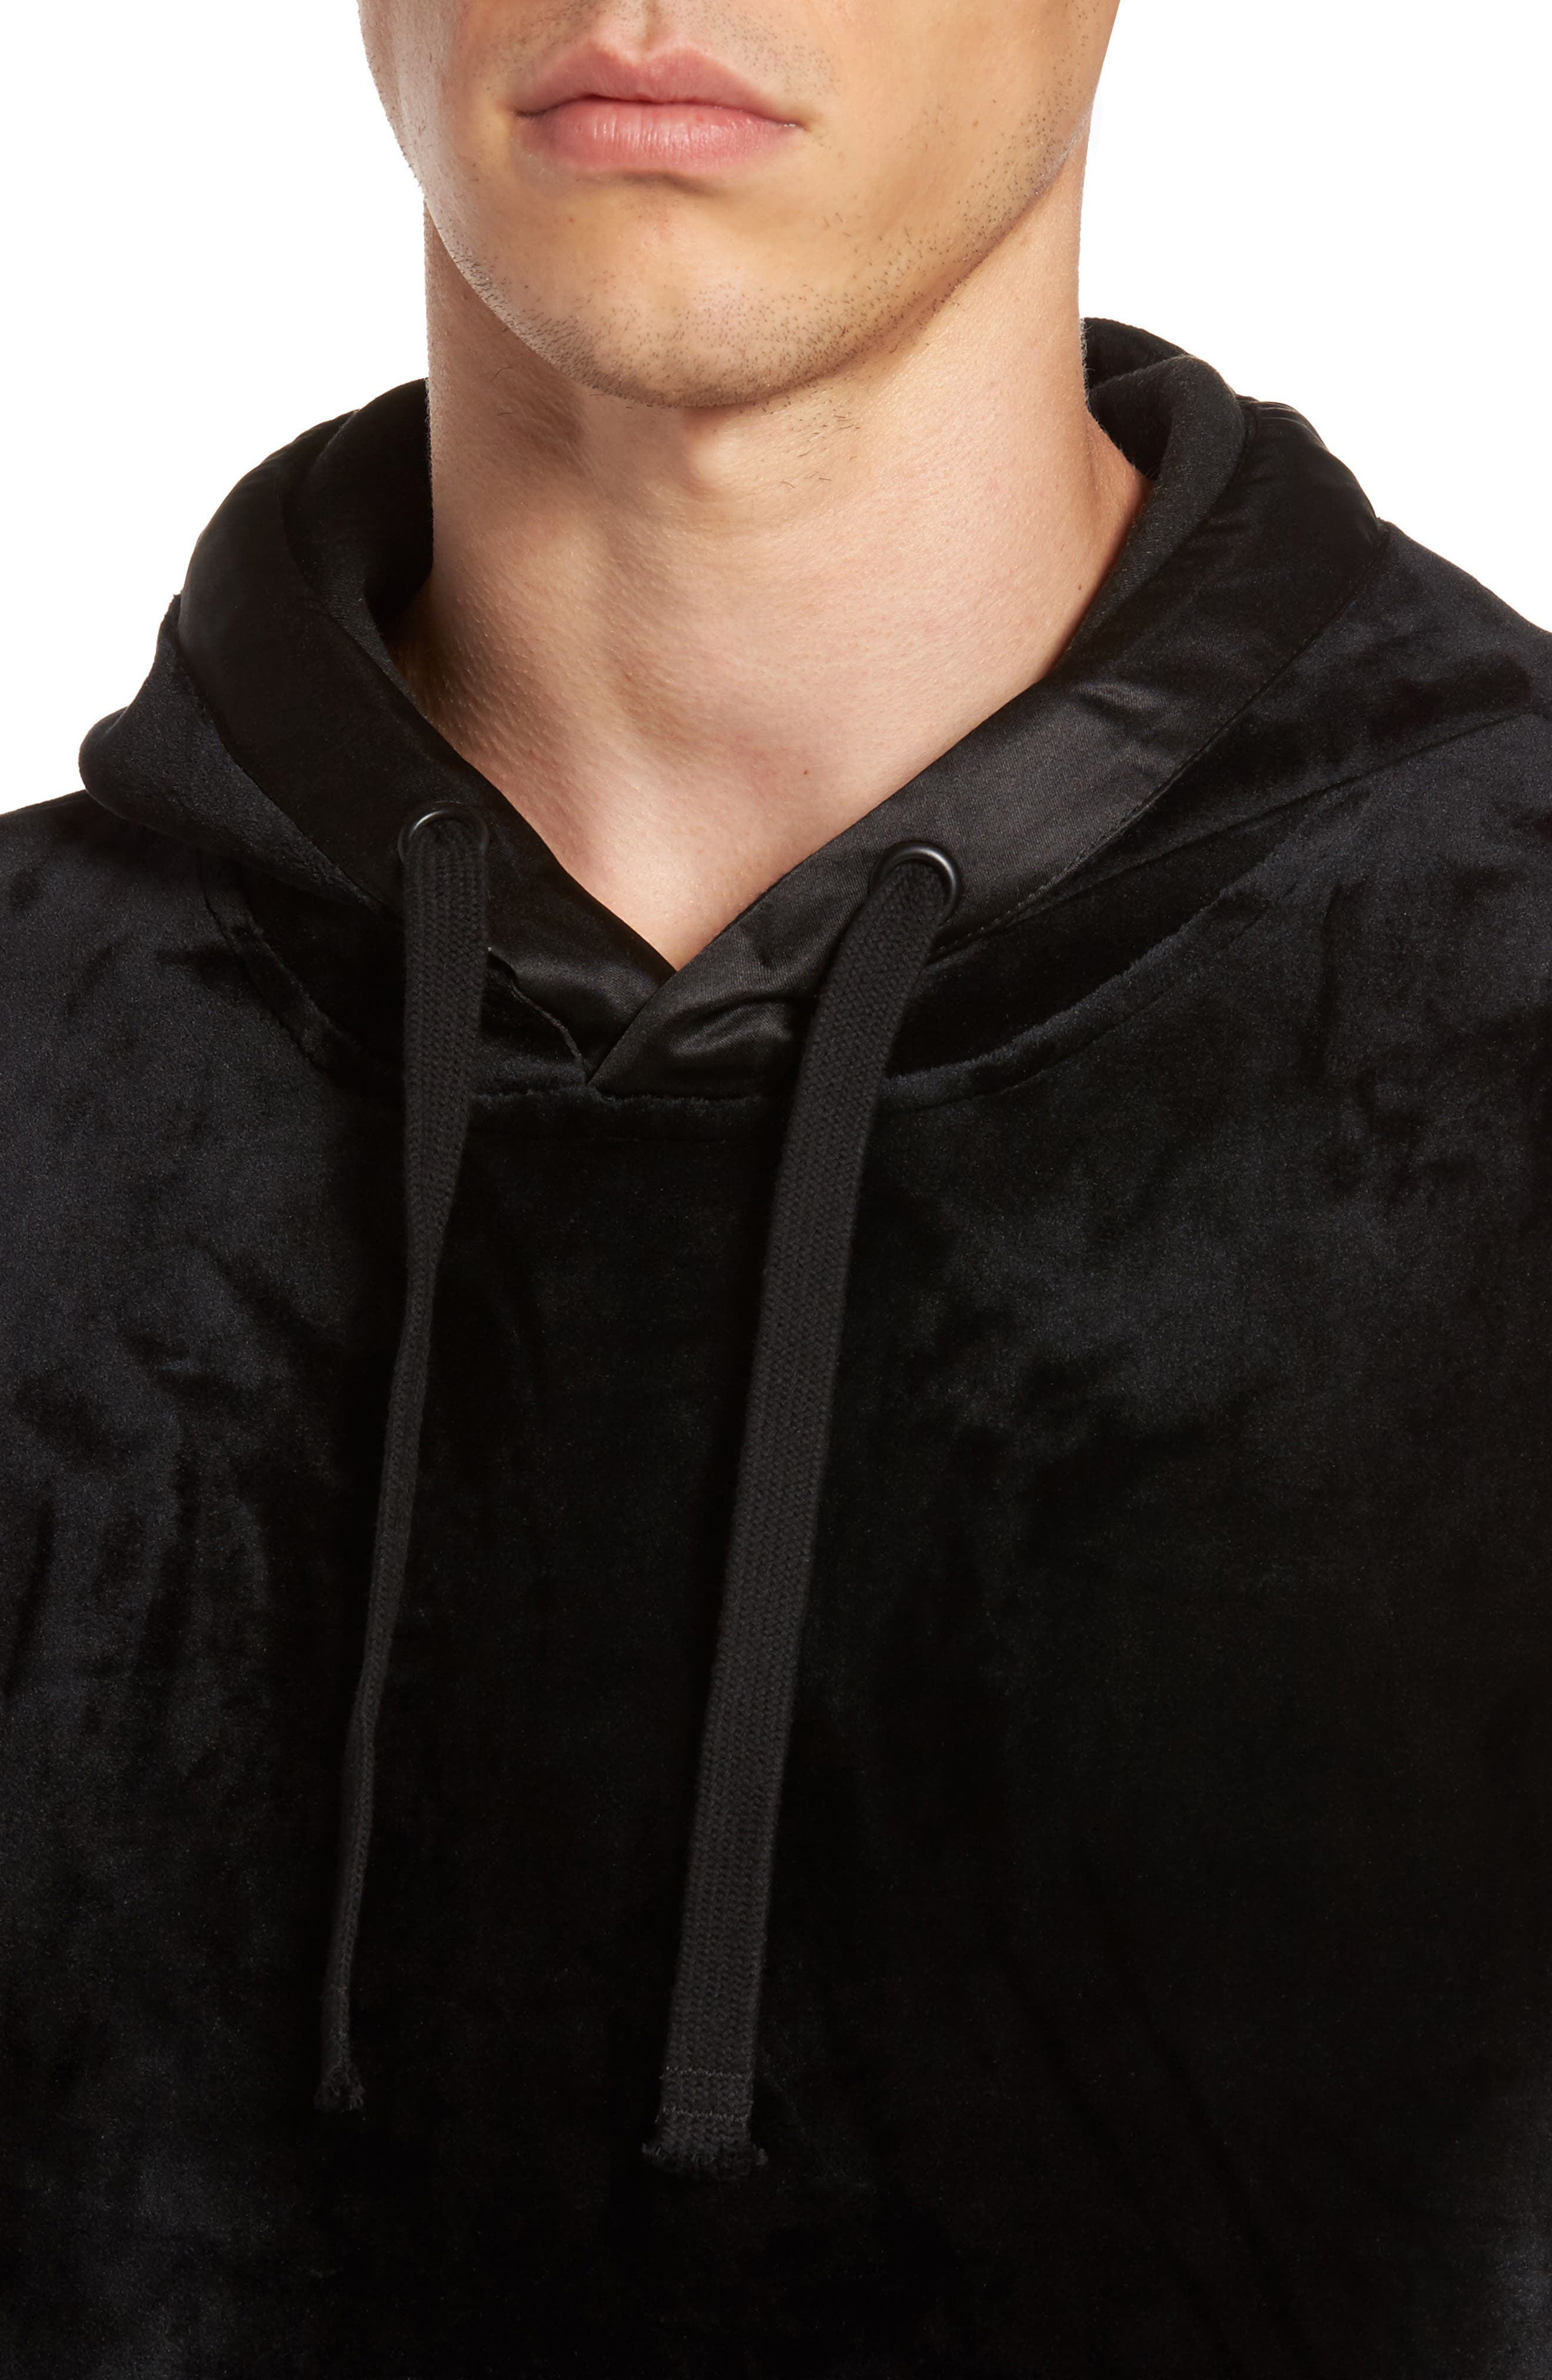 Fuzzy Pullover Hoodie,                             Alternate thumbnail 4, color,                             001